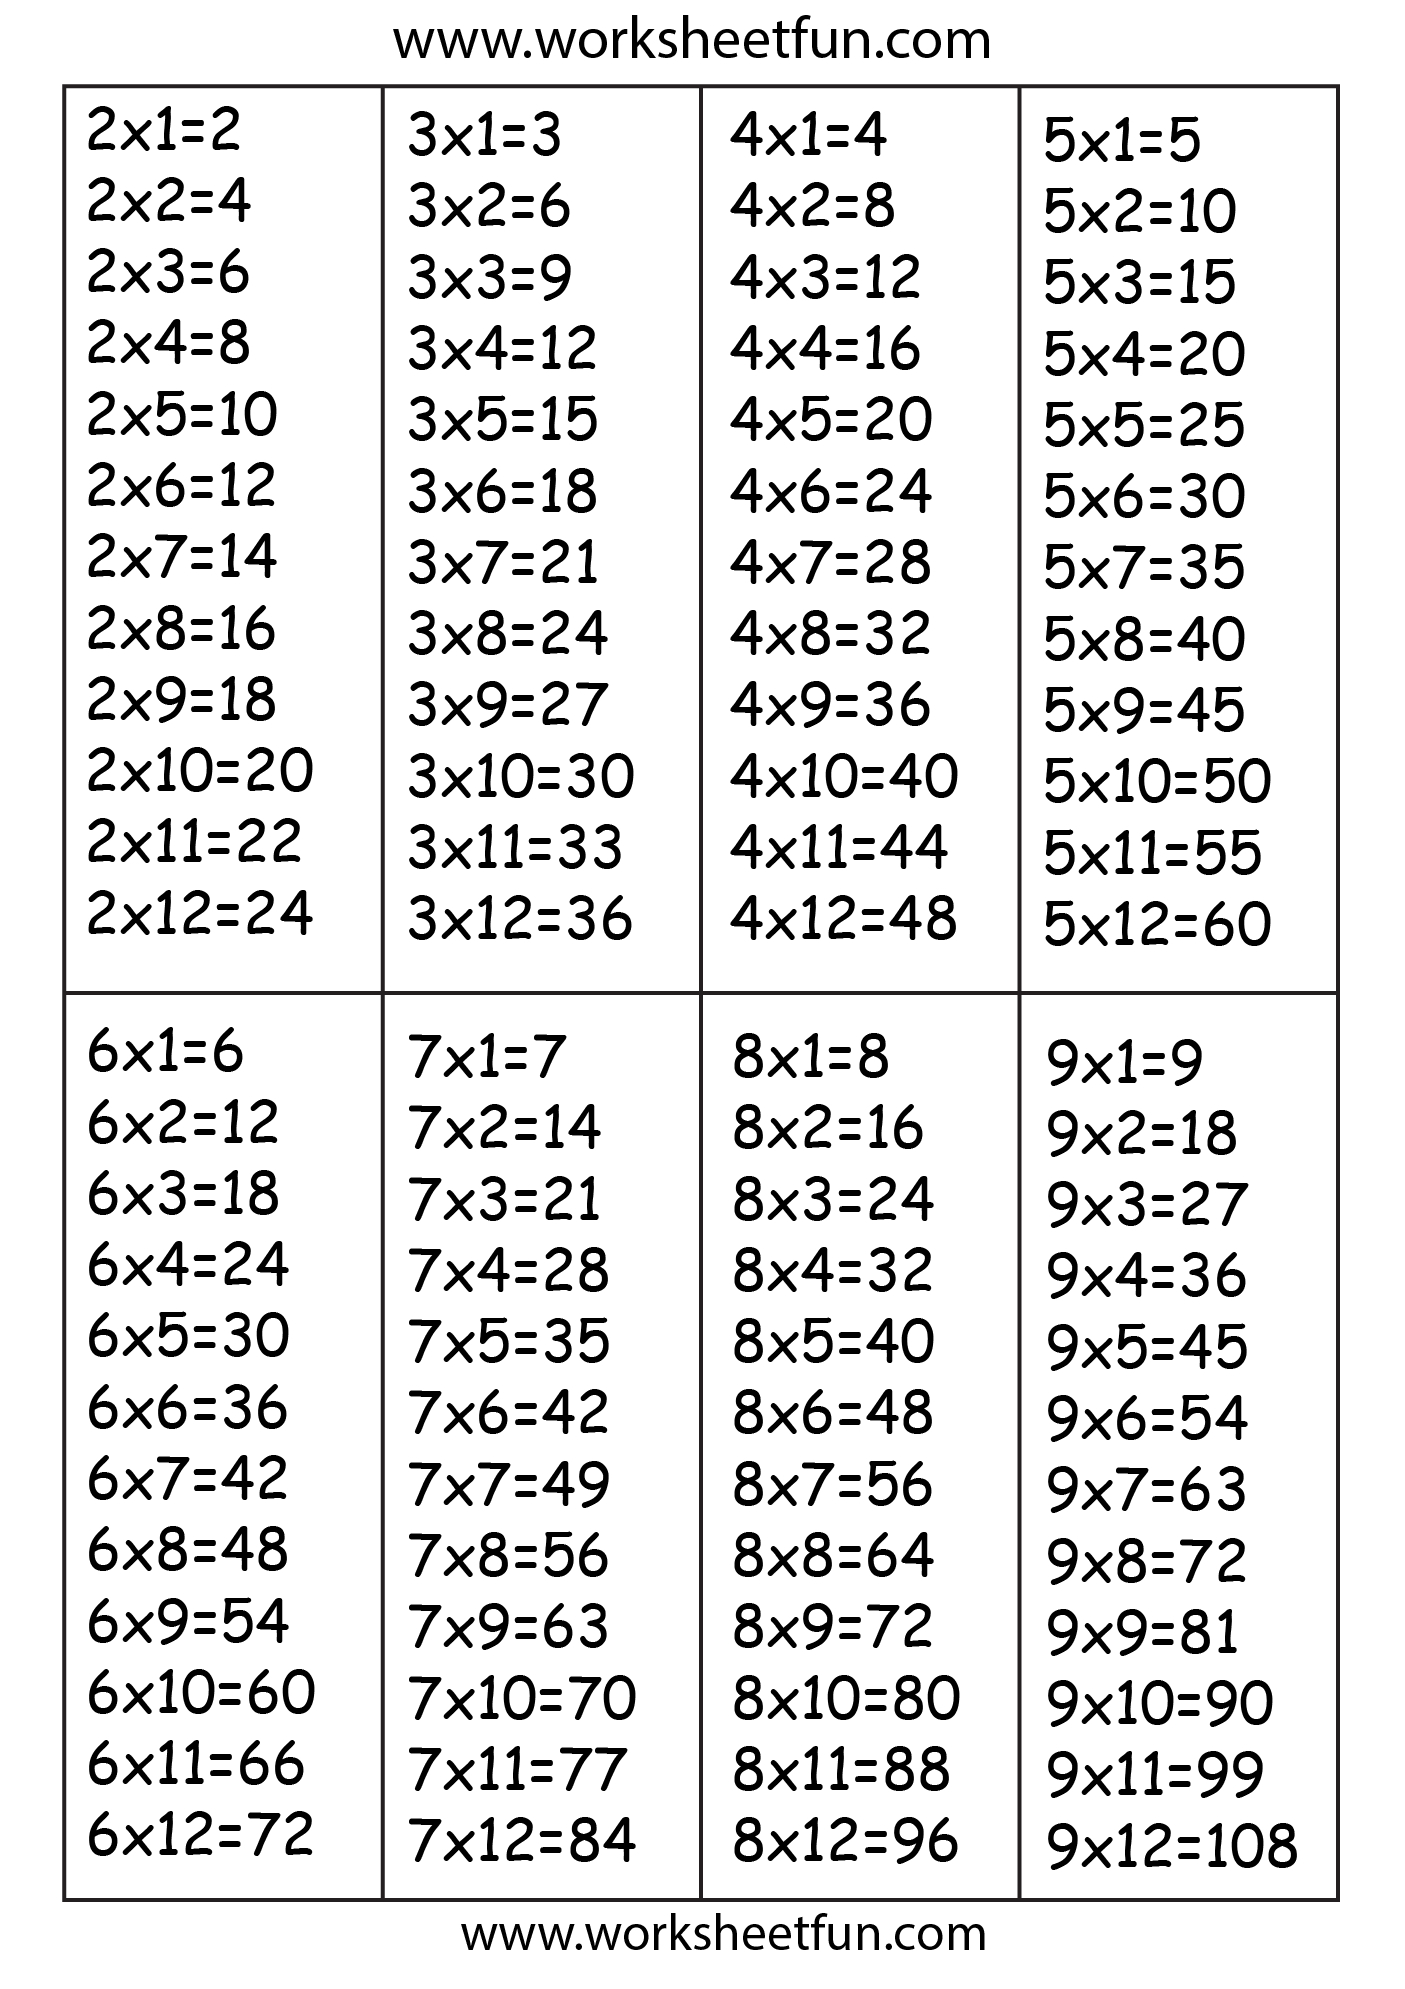 Times Tables / Free Printable Worksheets – Worksheetfun | Times Tables Worksheets Printable